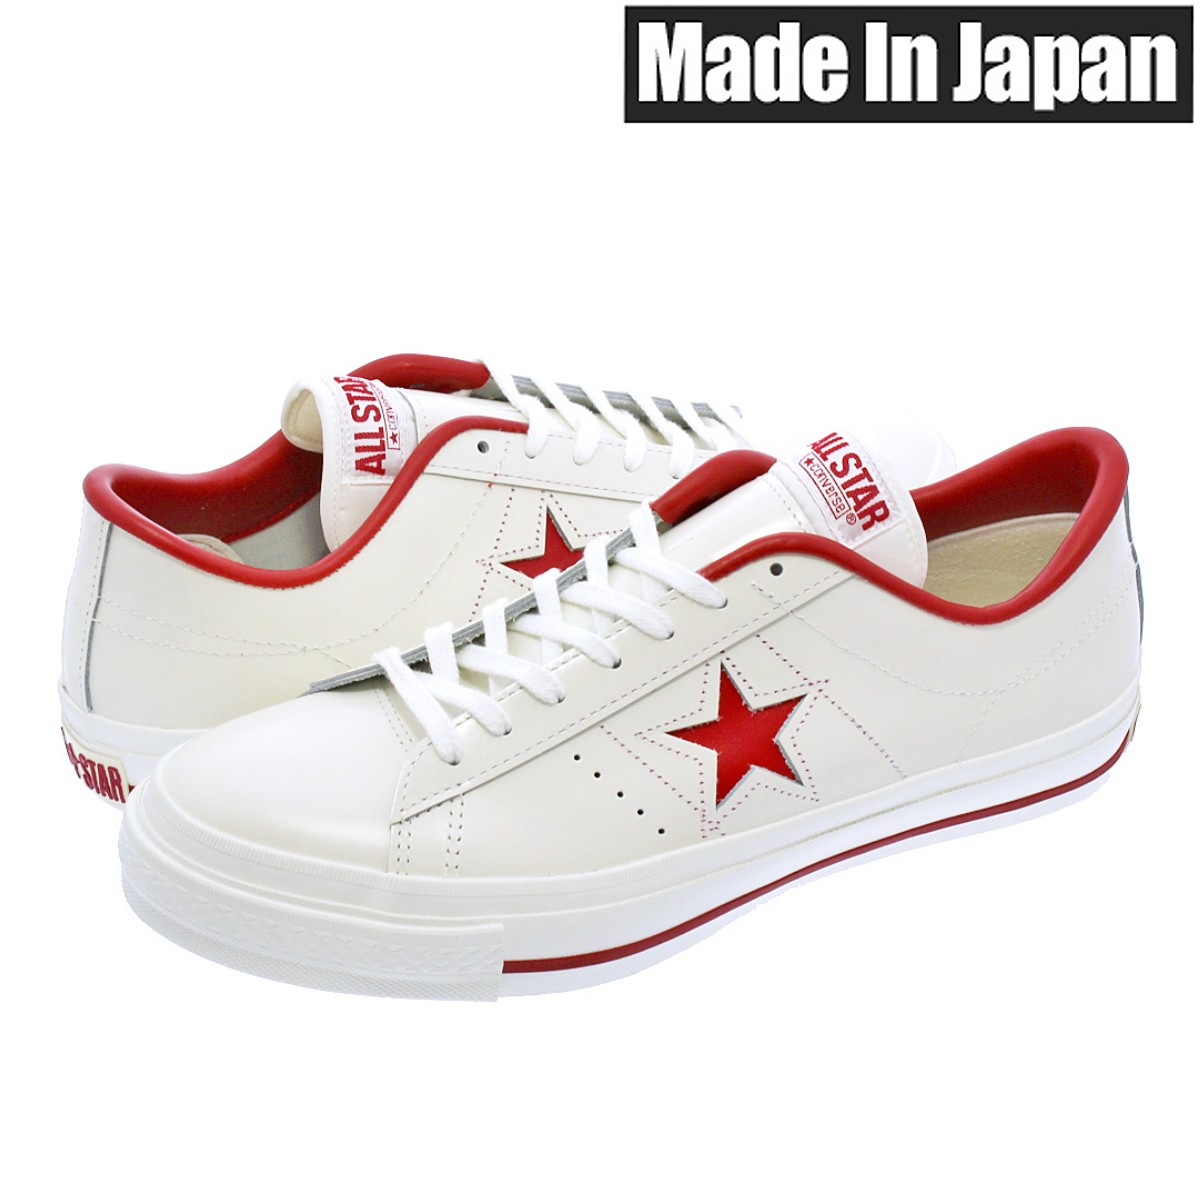 CONVERSE ONE STAR J 【MADE IN JAPAN】【日本製】【メンズ】【レディース】コンバース ワンスター J WHITE/RED